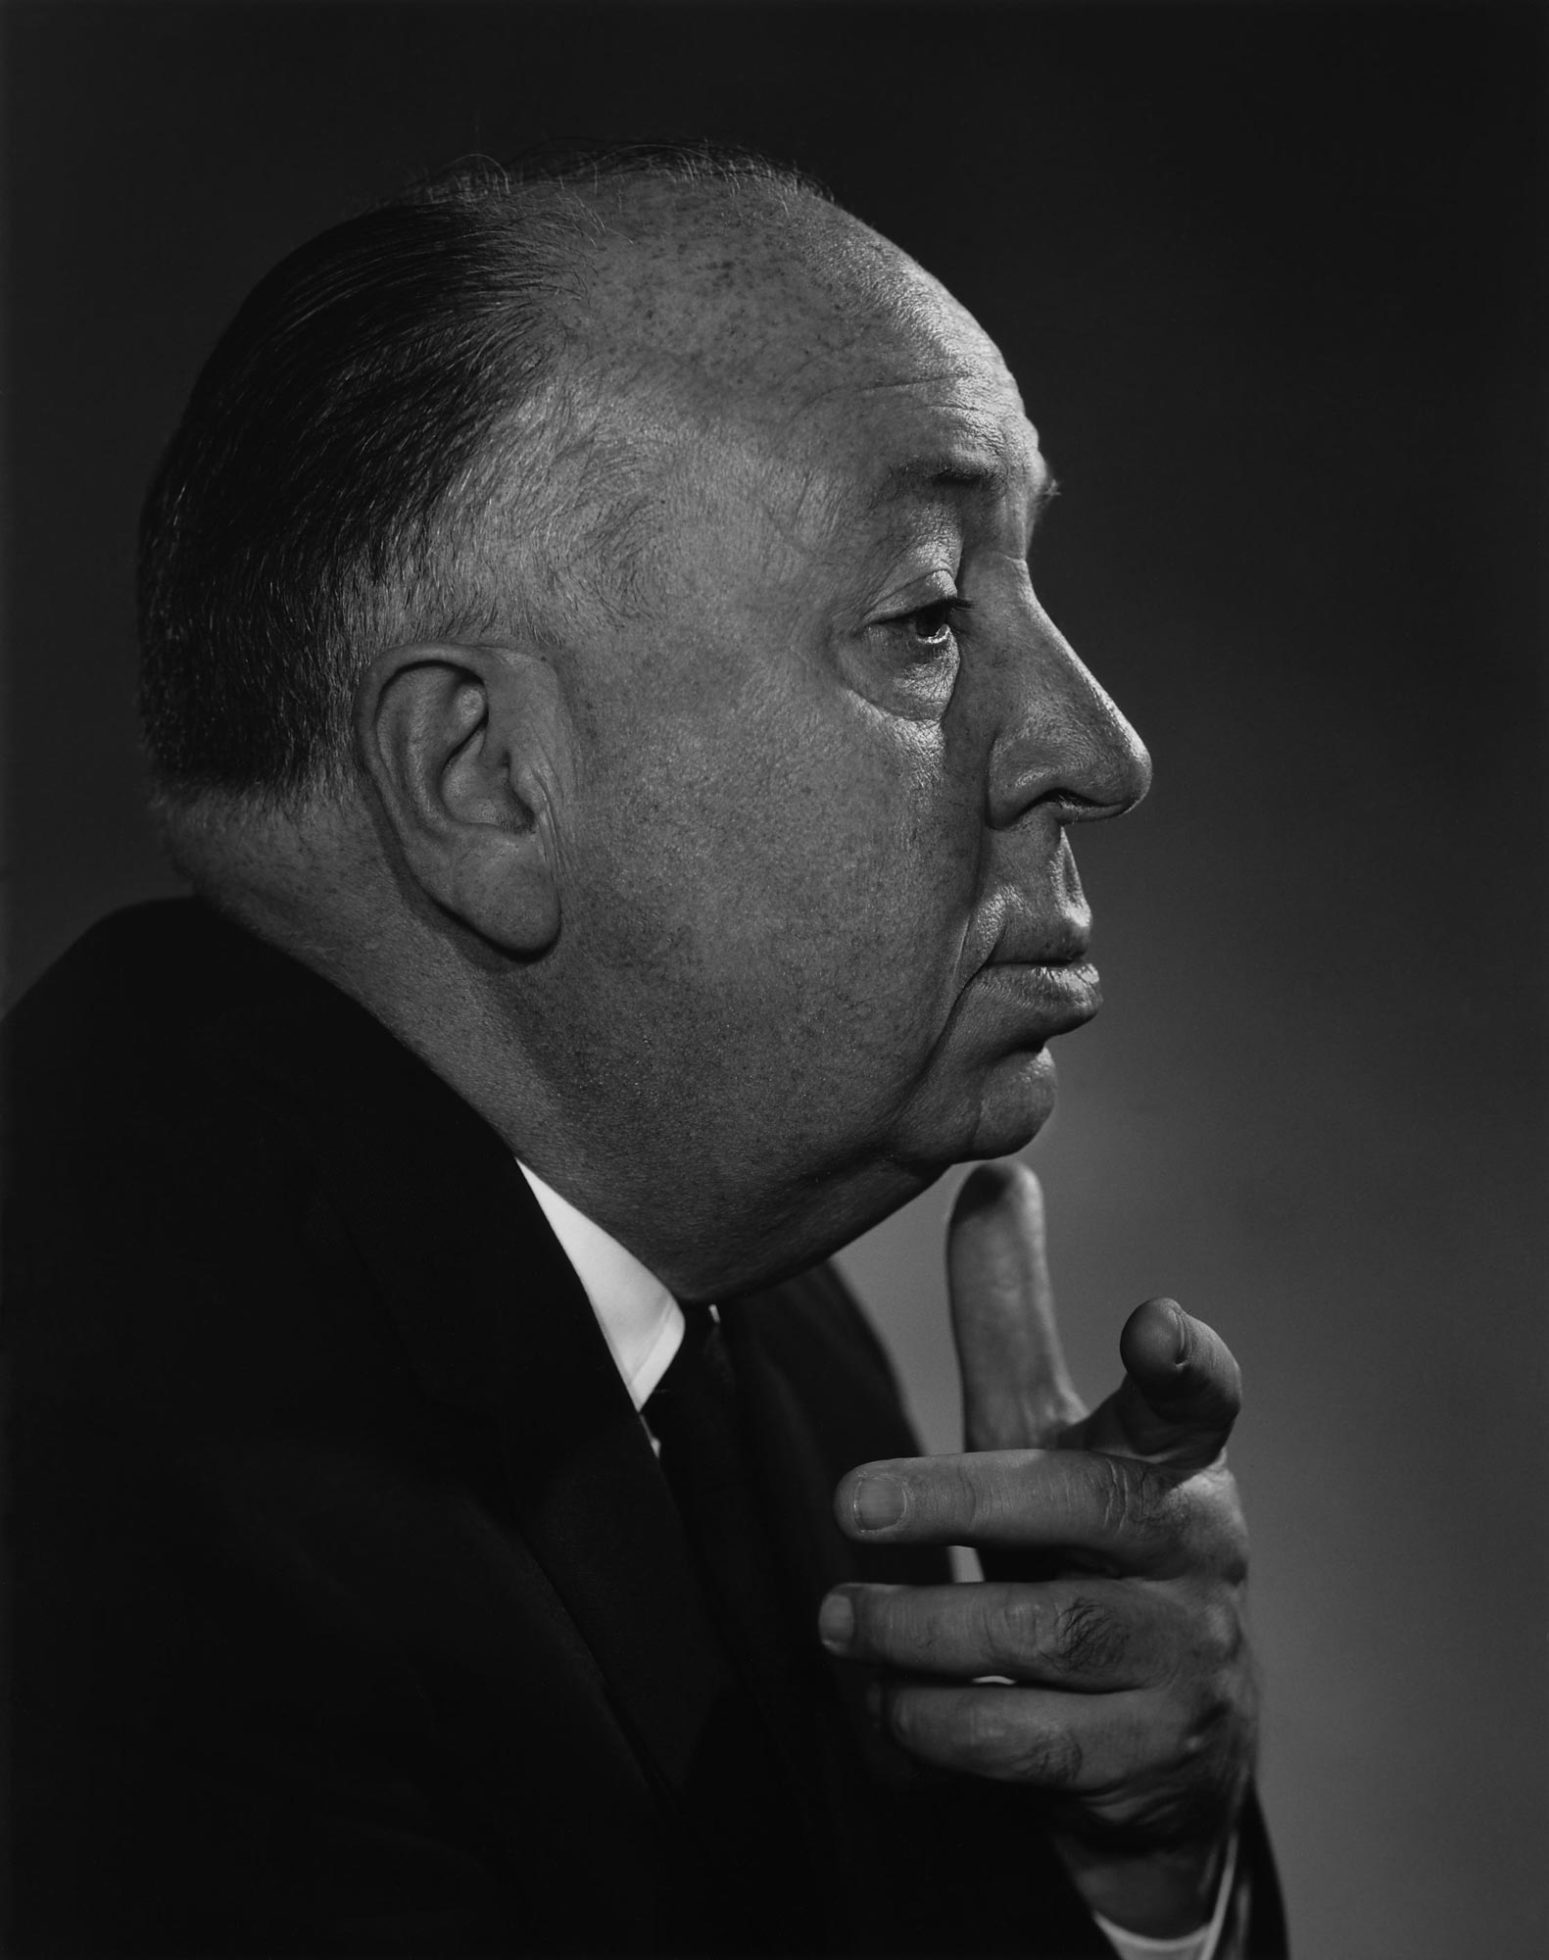 Yousuf-Karsh-Alfred-Hitchcock